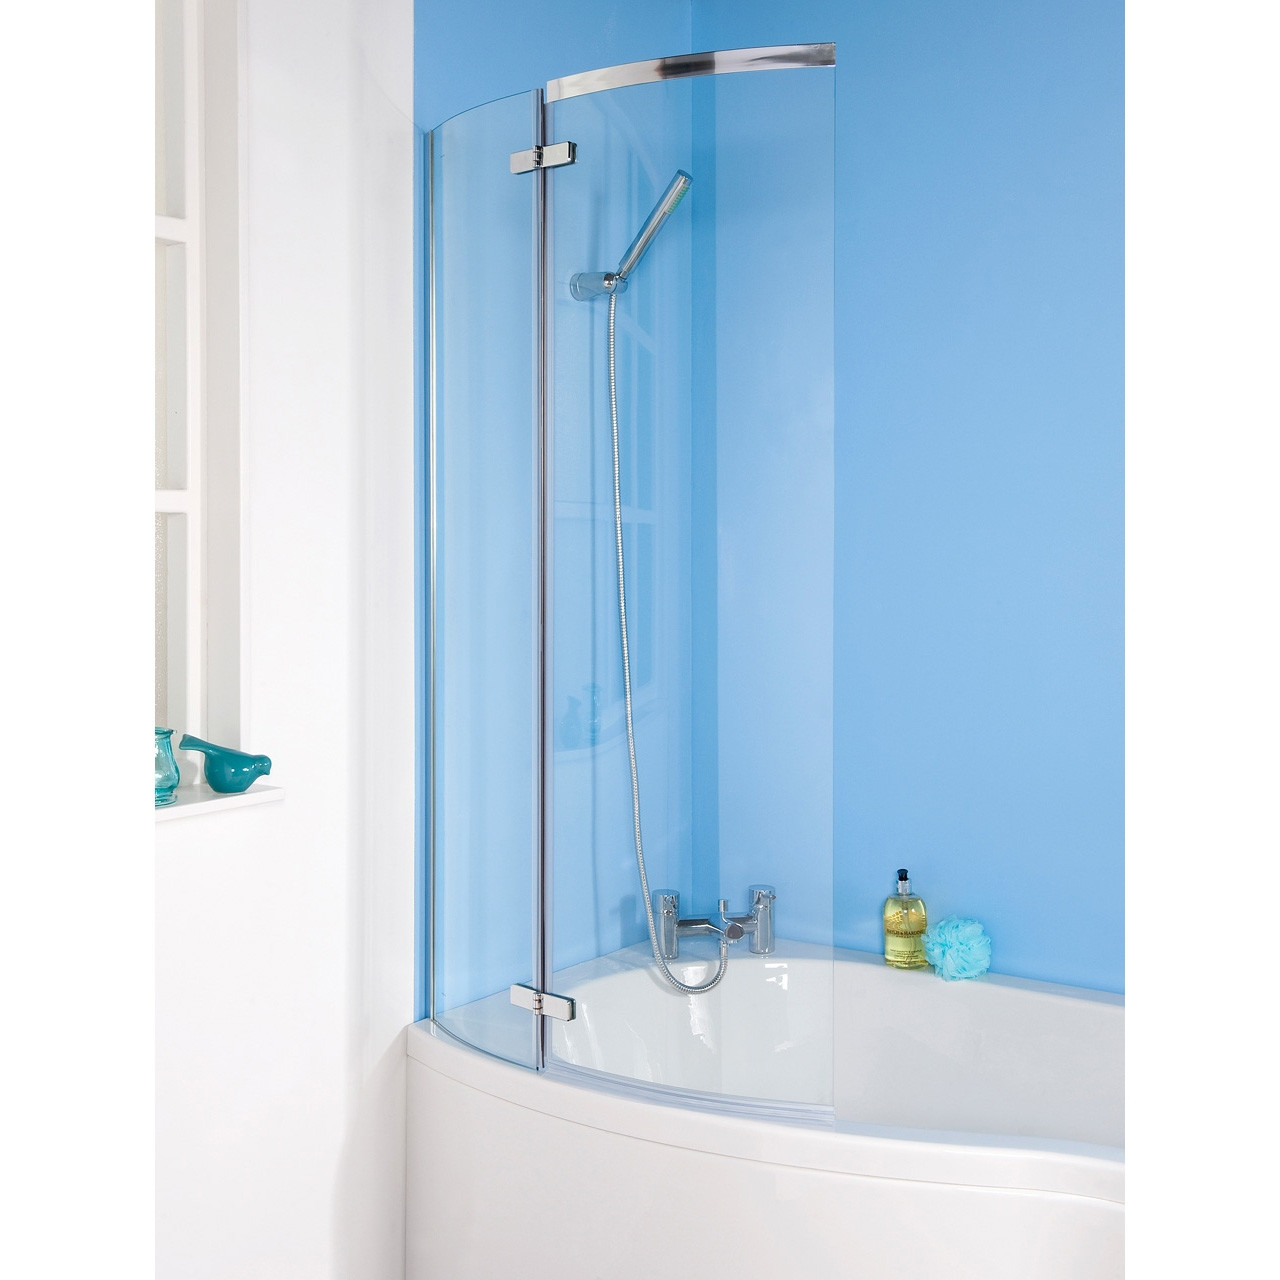 Premier Ella 'P' Curved Bath Screen - ERCS0